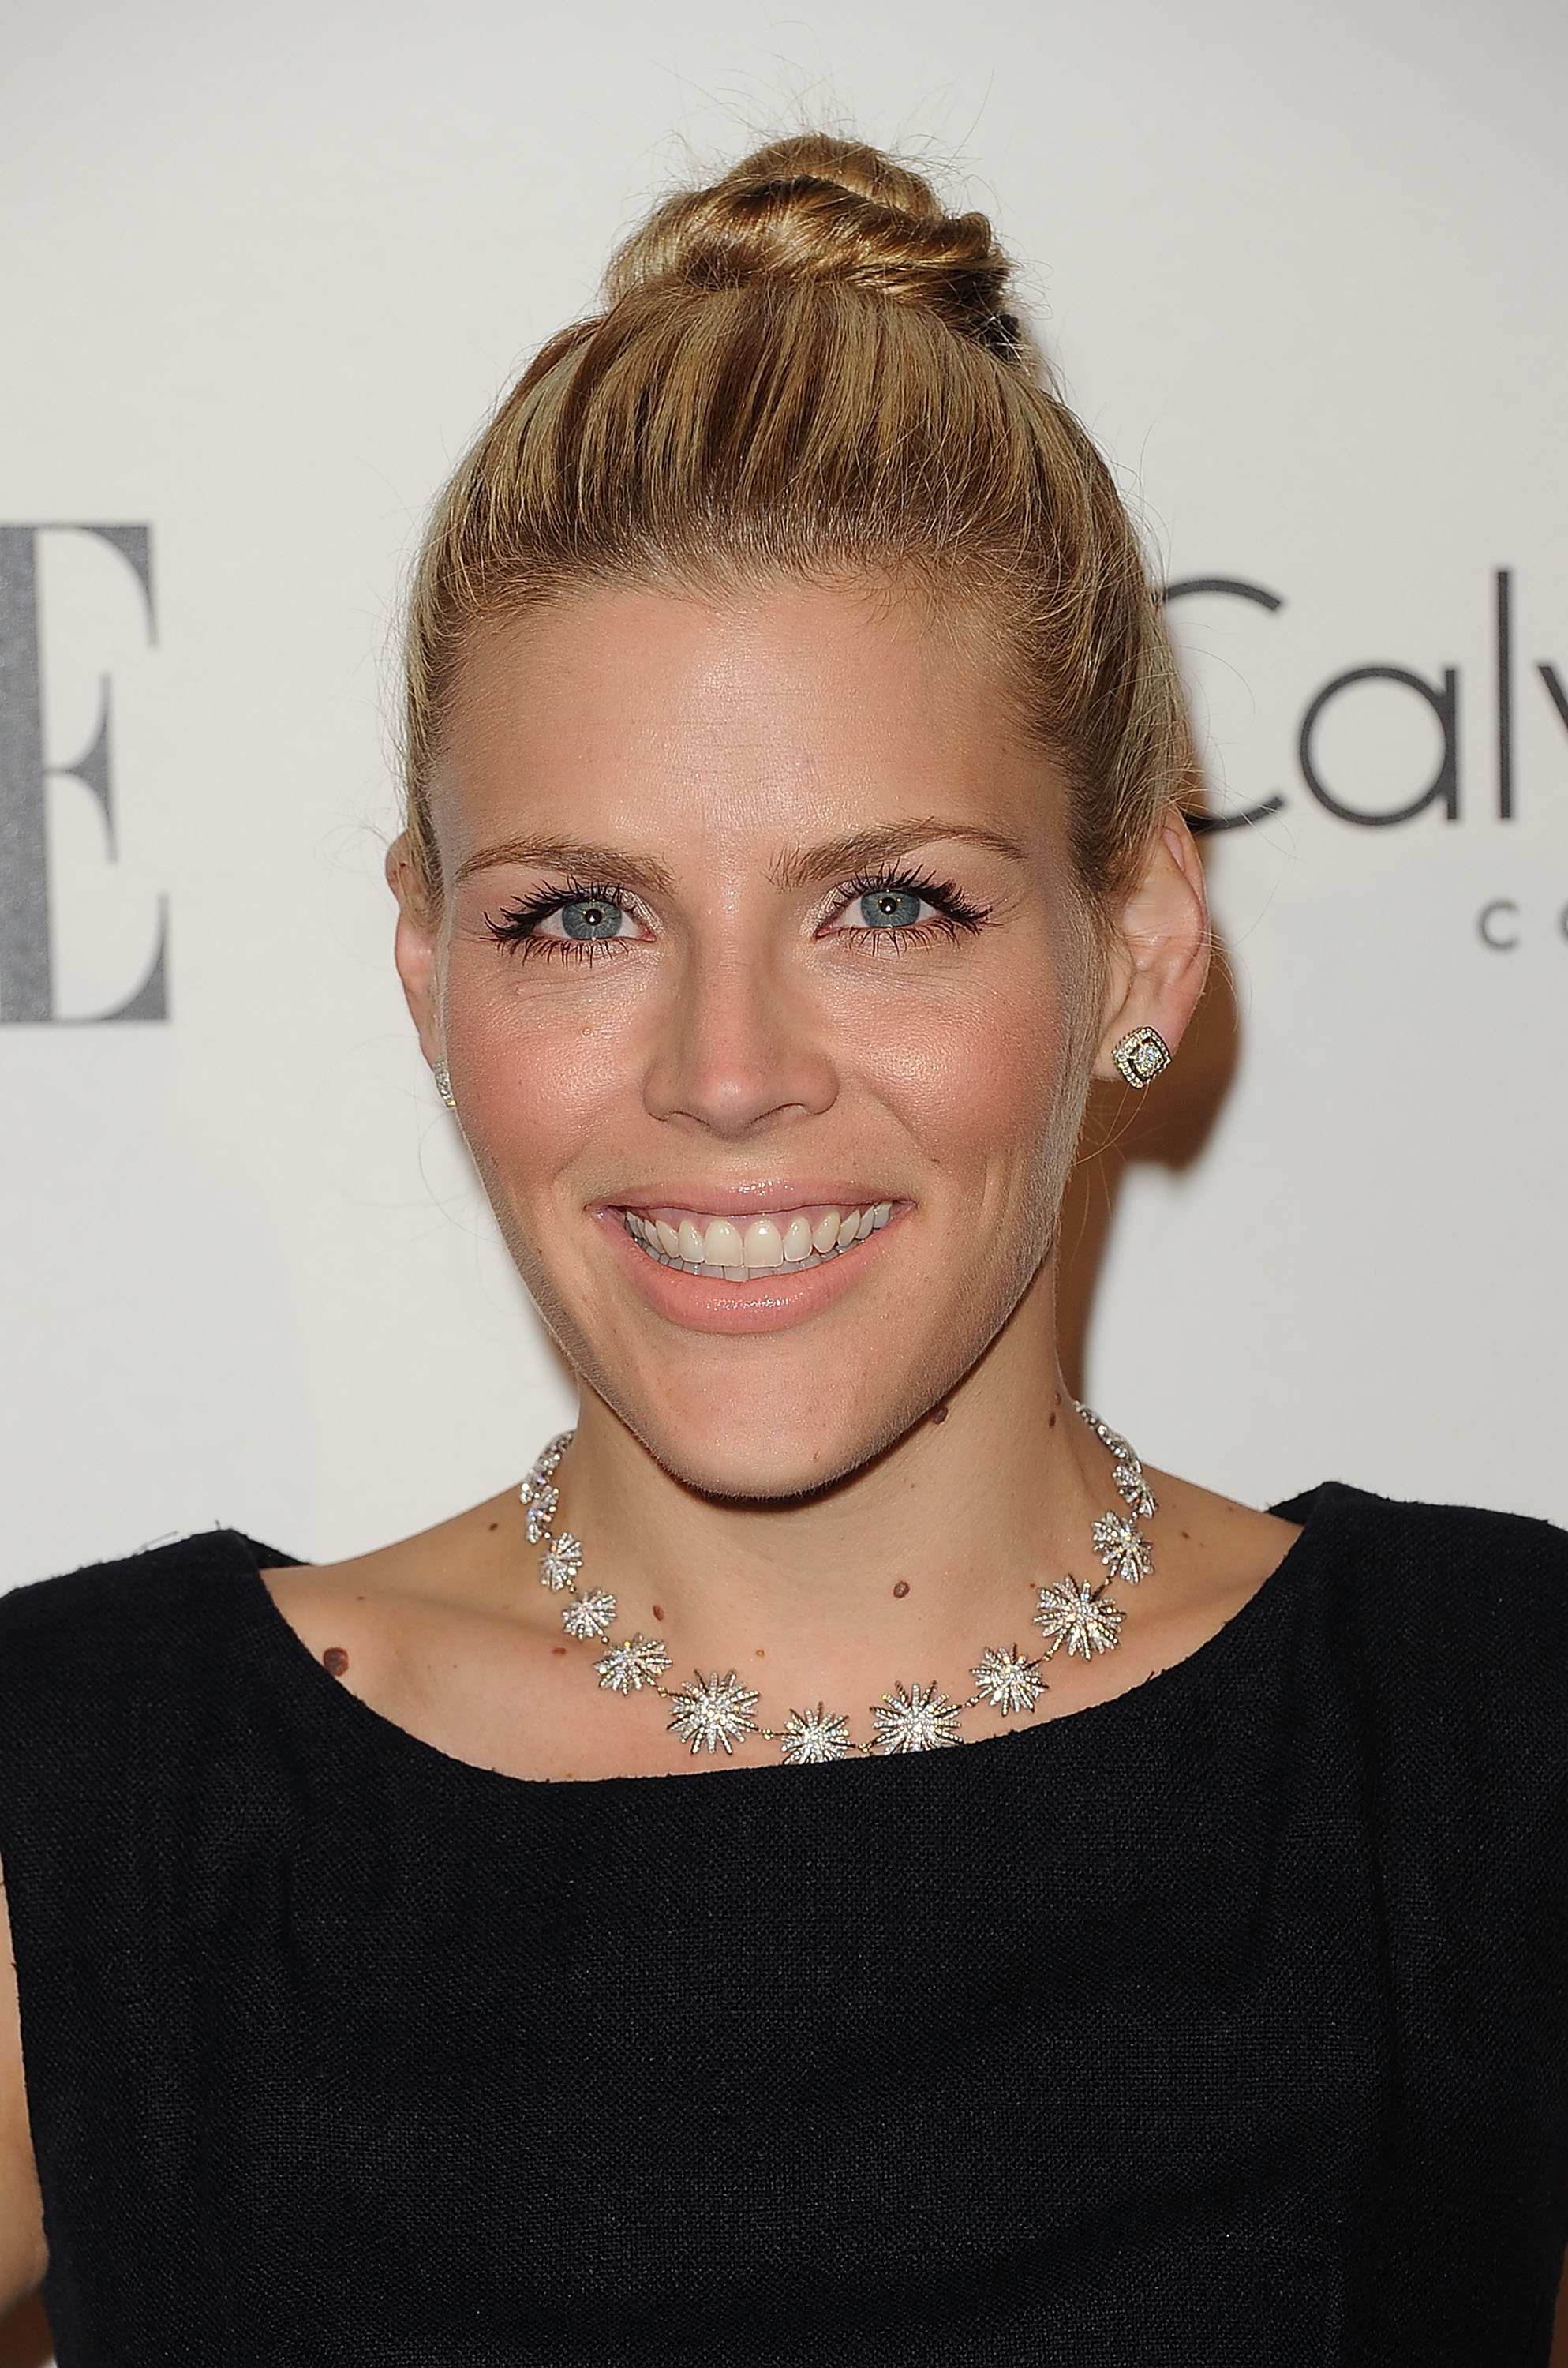 Busy Philipps at Elle's Women in Hollywood Tribute.